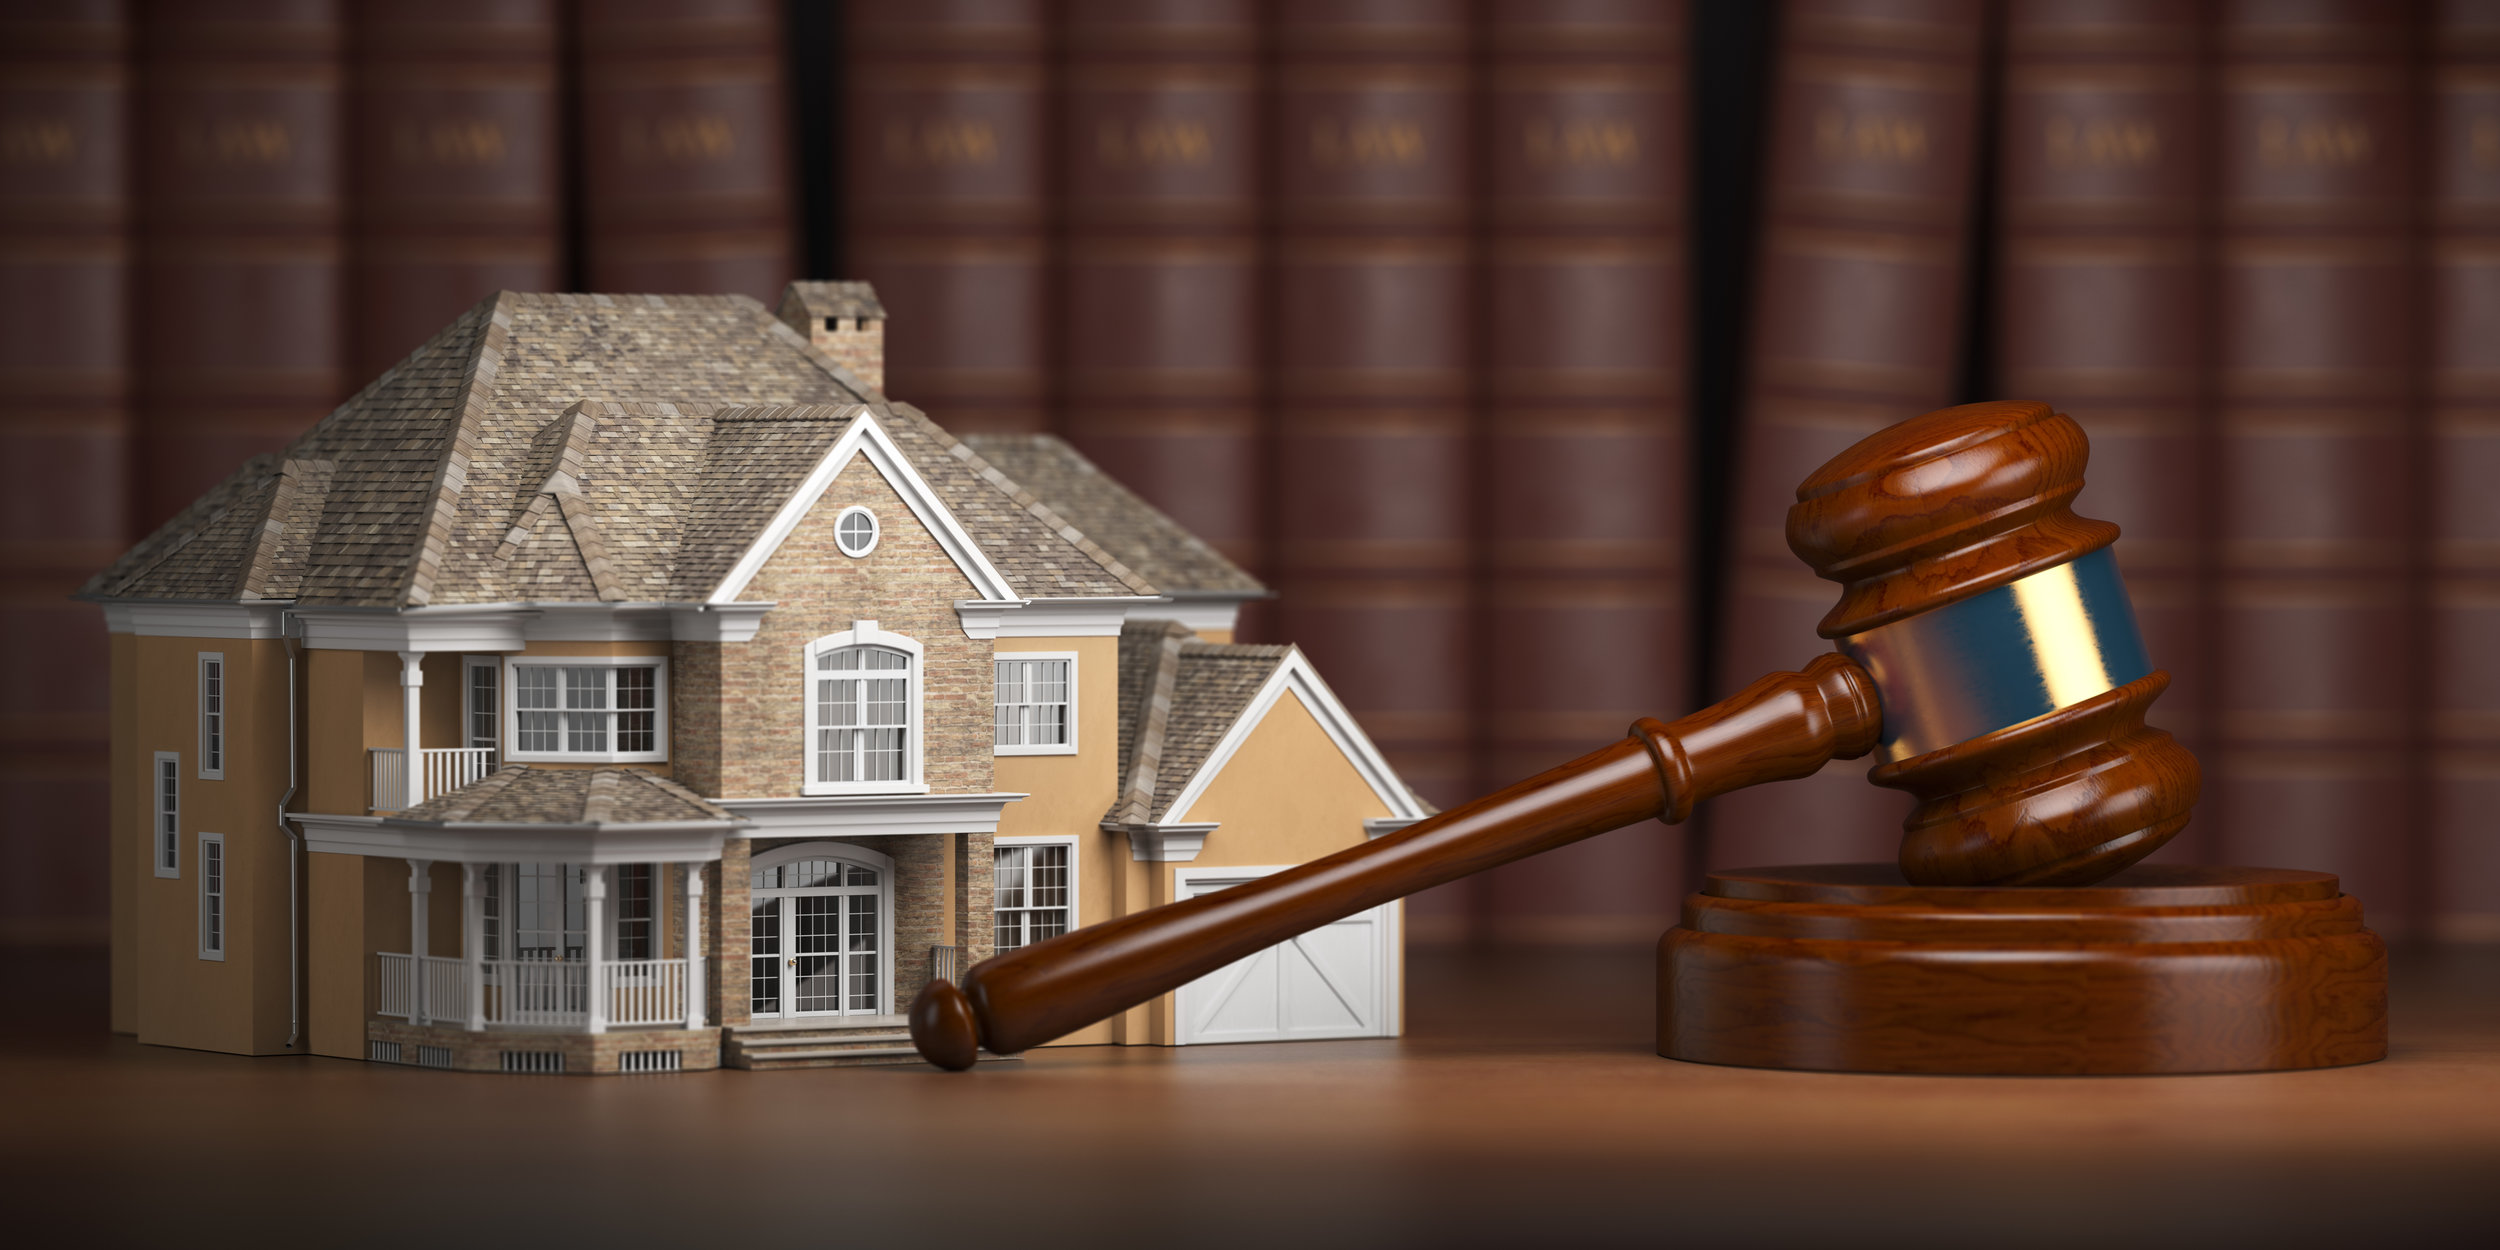 house-with-gavel-and-law-books-real-estate-law-XM3QZCA.jpg